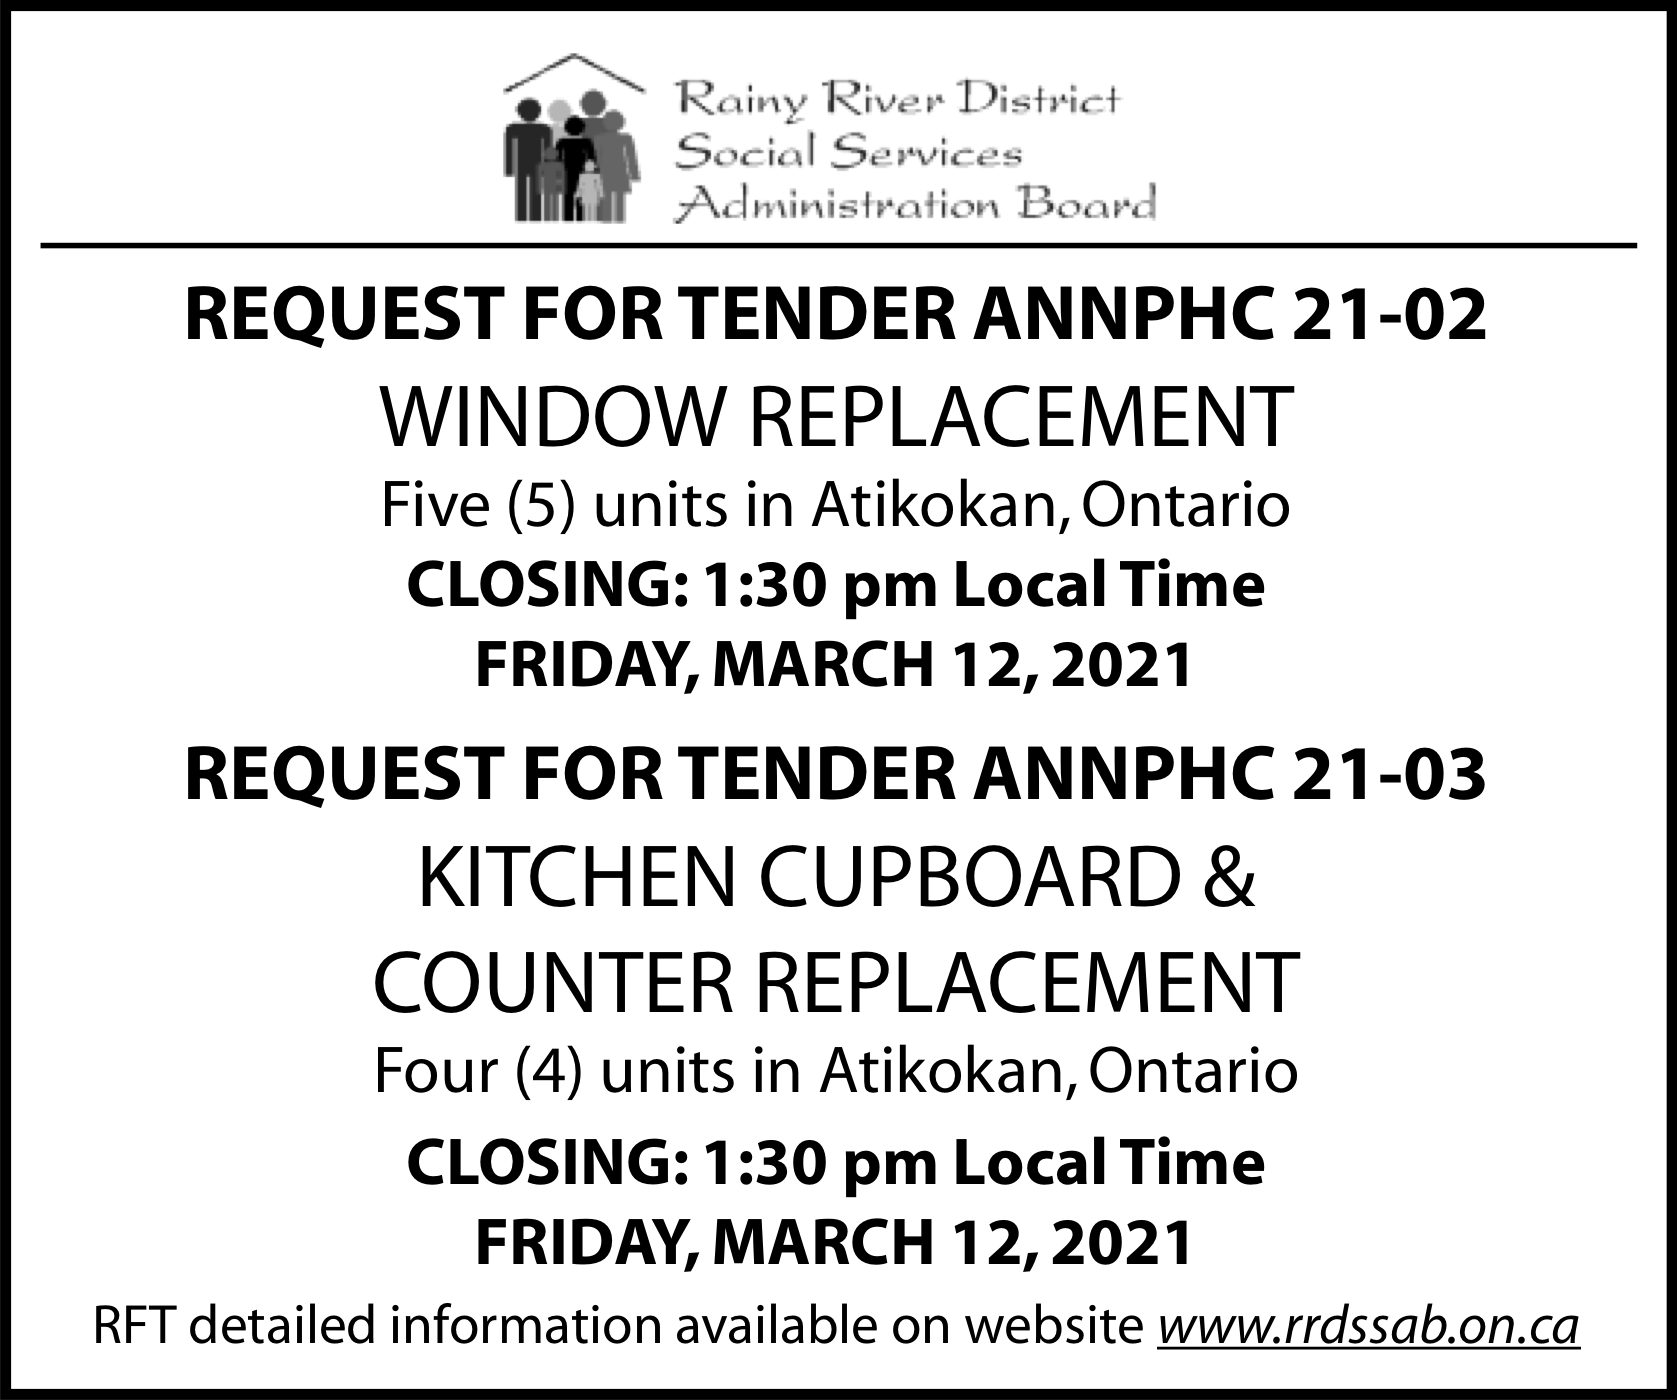 RRDSSAB Requests for Tender